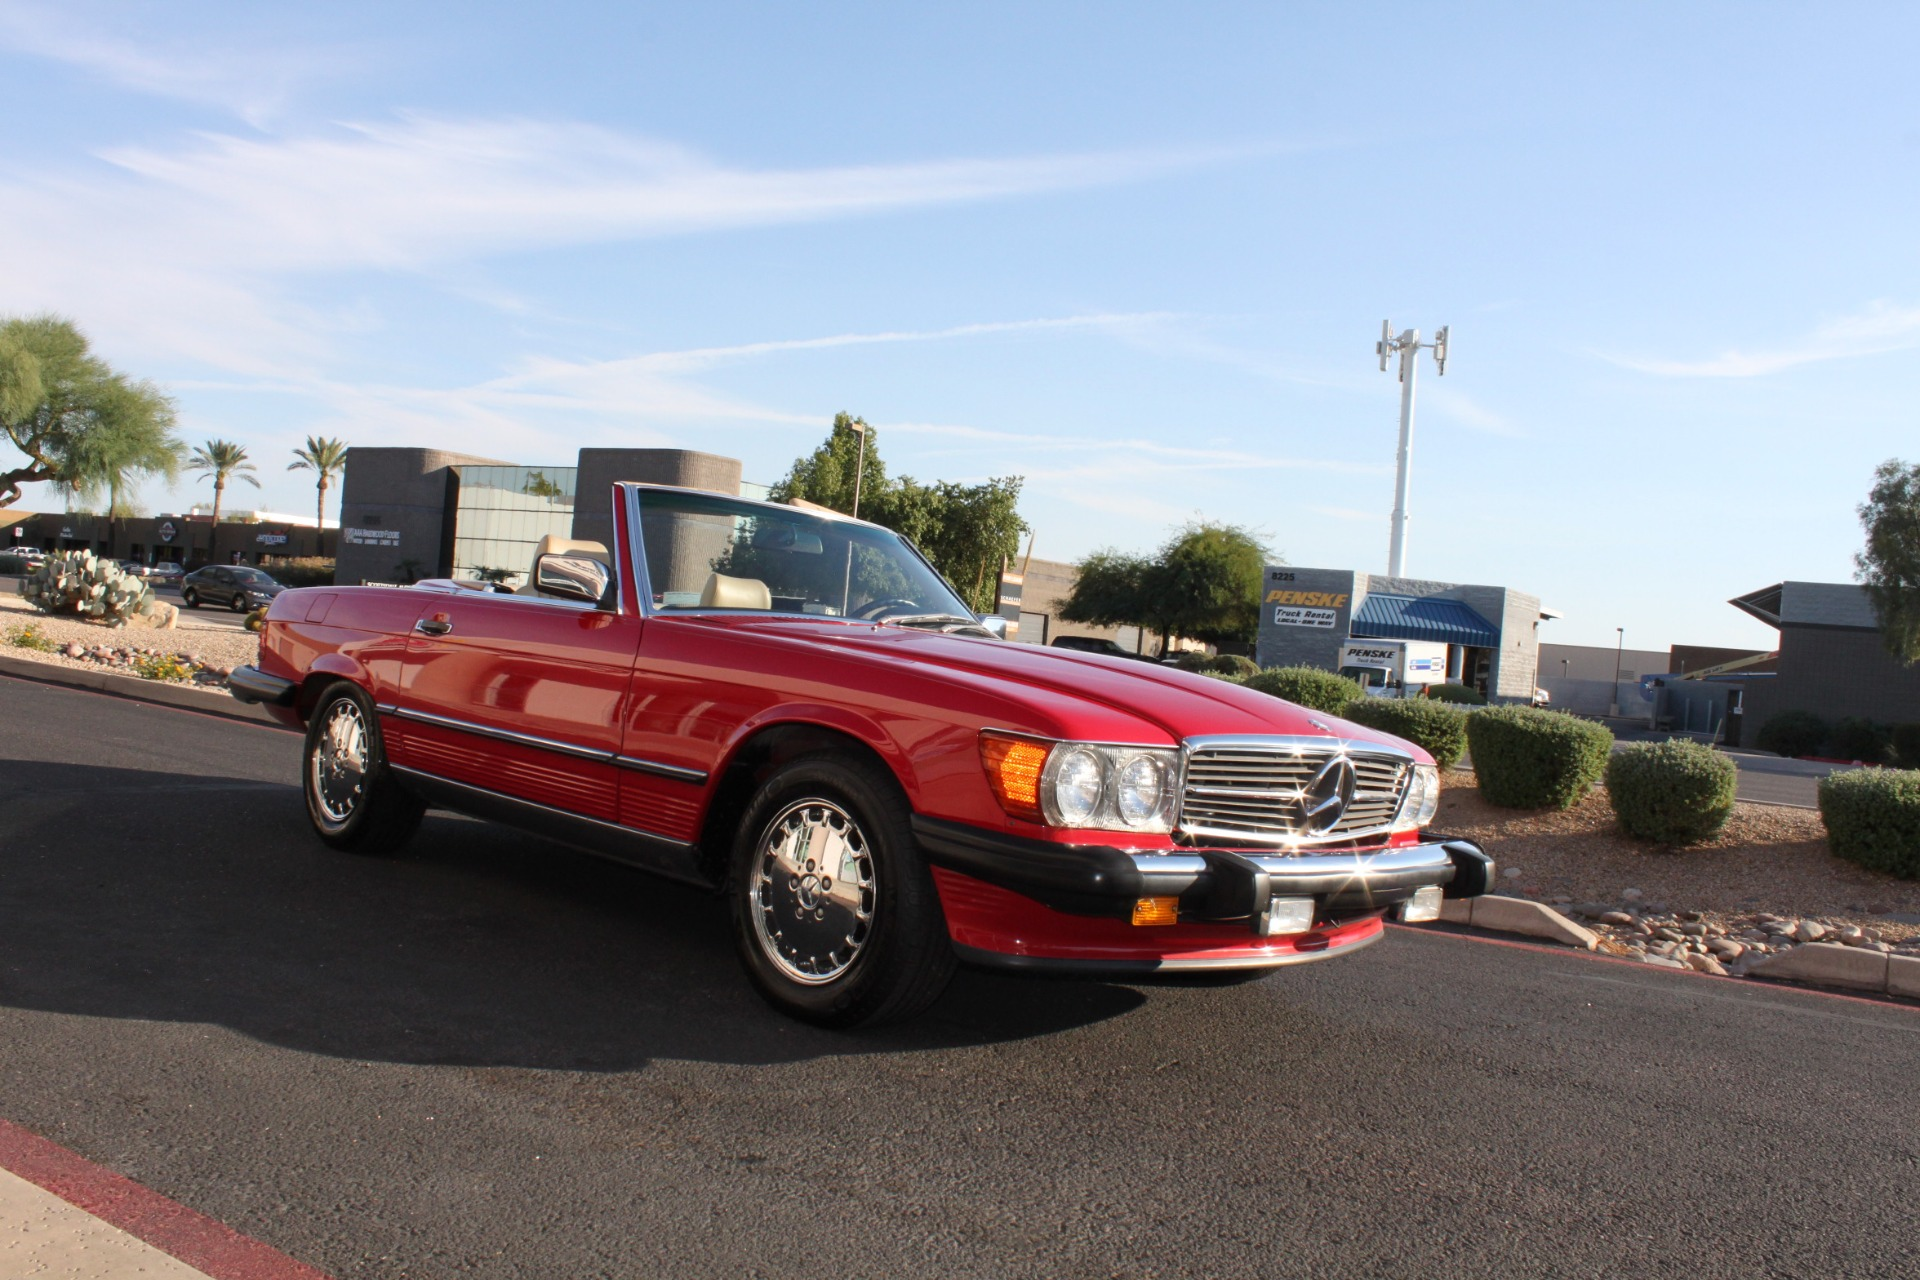 Used-1989-Mercedes-Benz-560-Series-560SL-Chevrolet